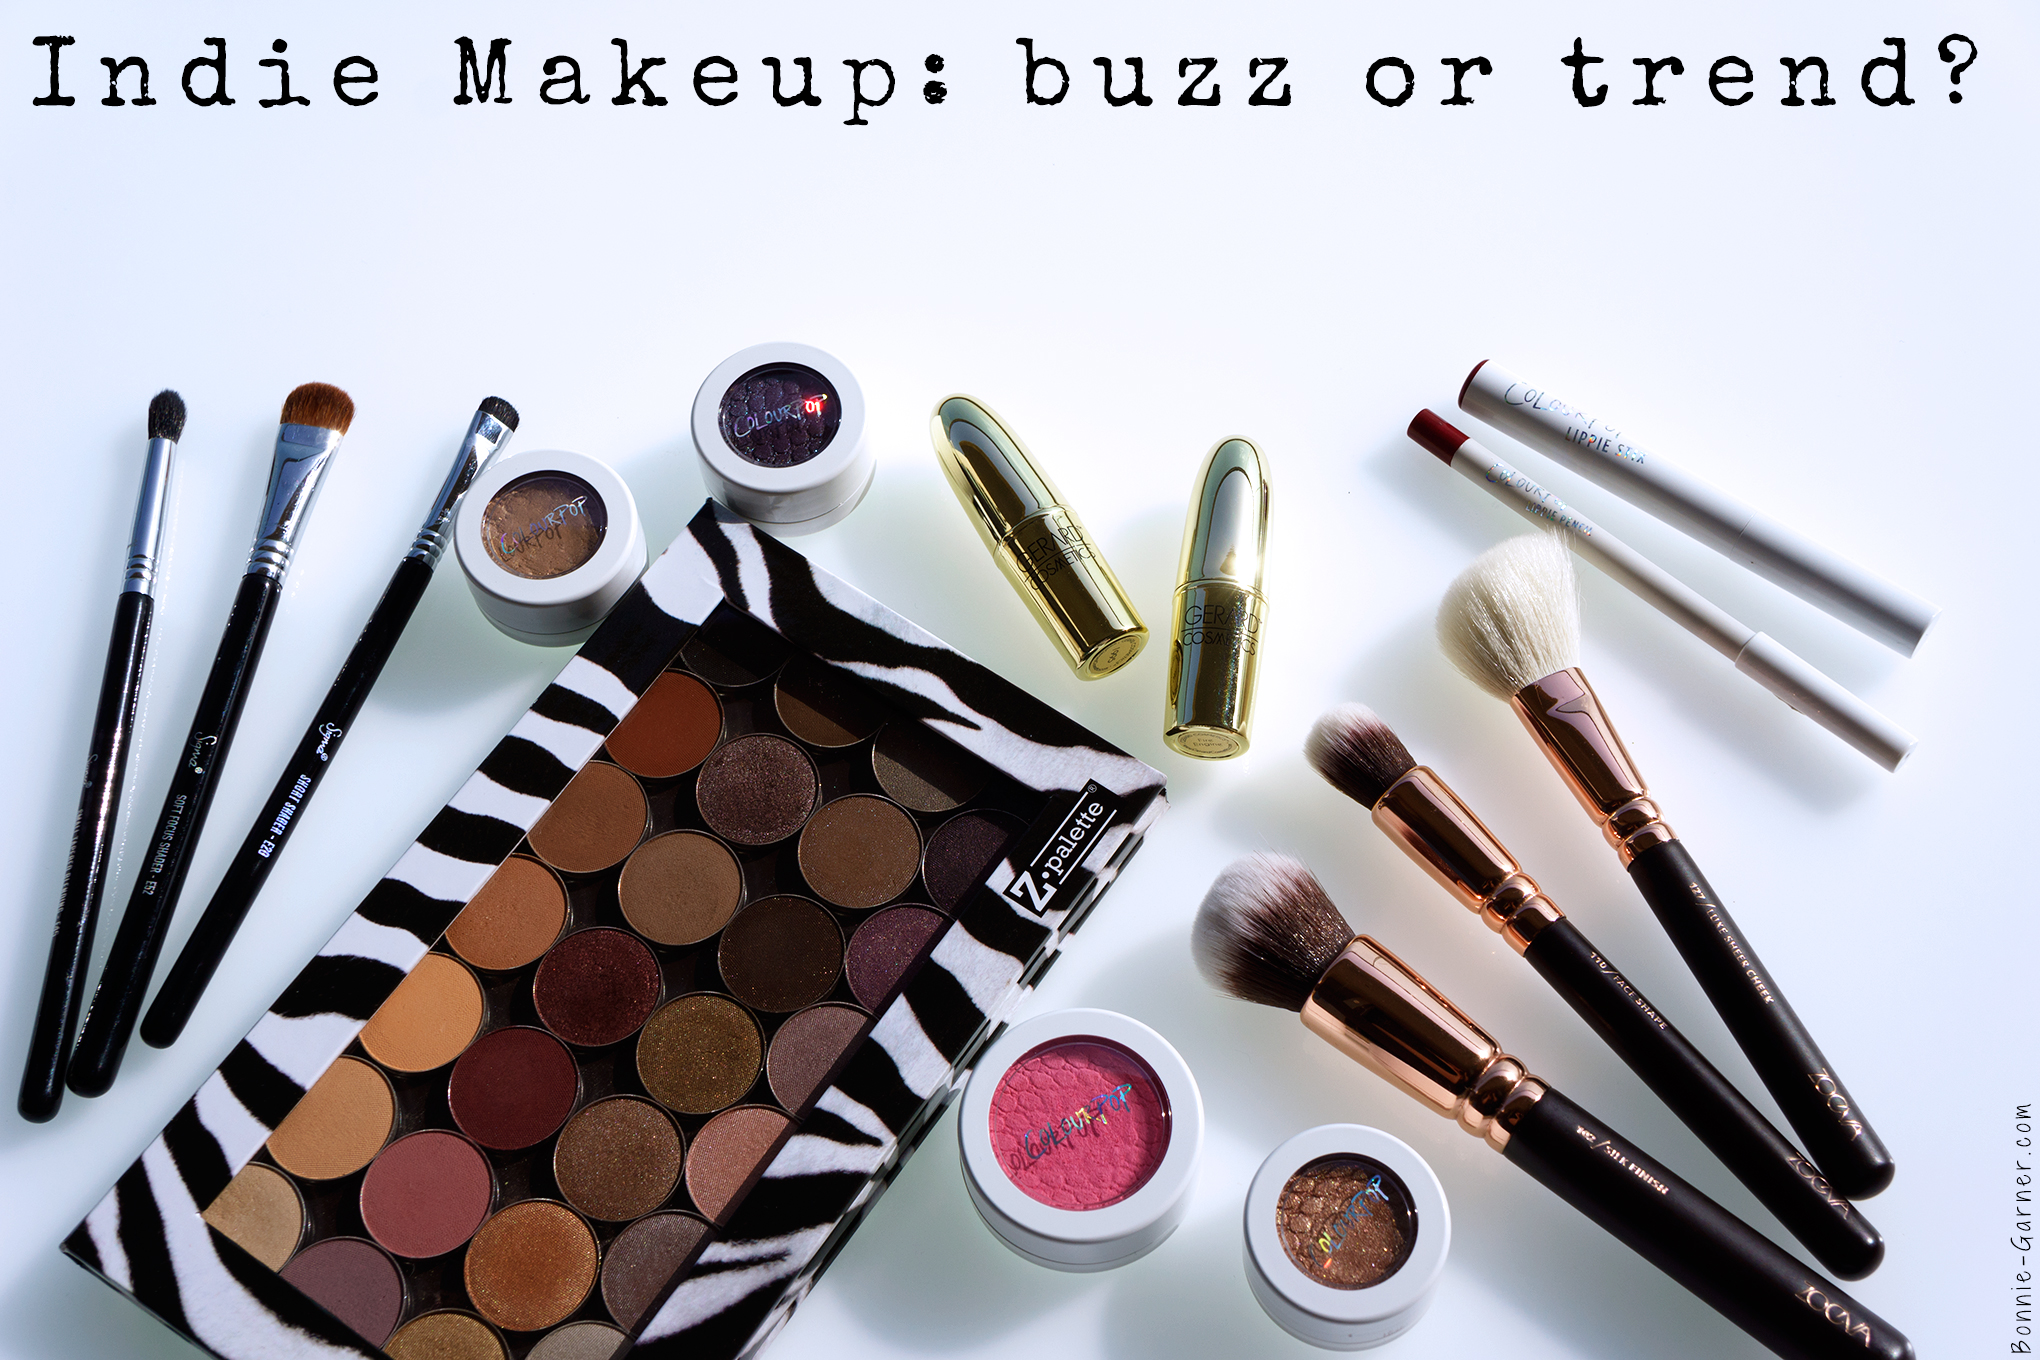 Indie Makeup: buzz or trend?